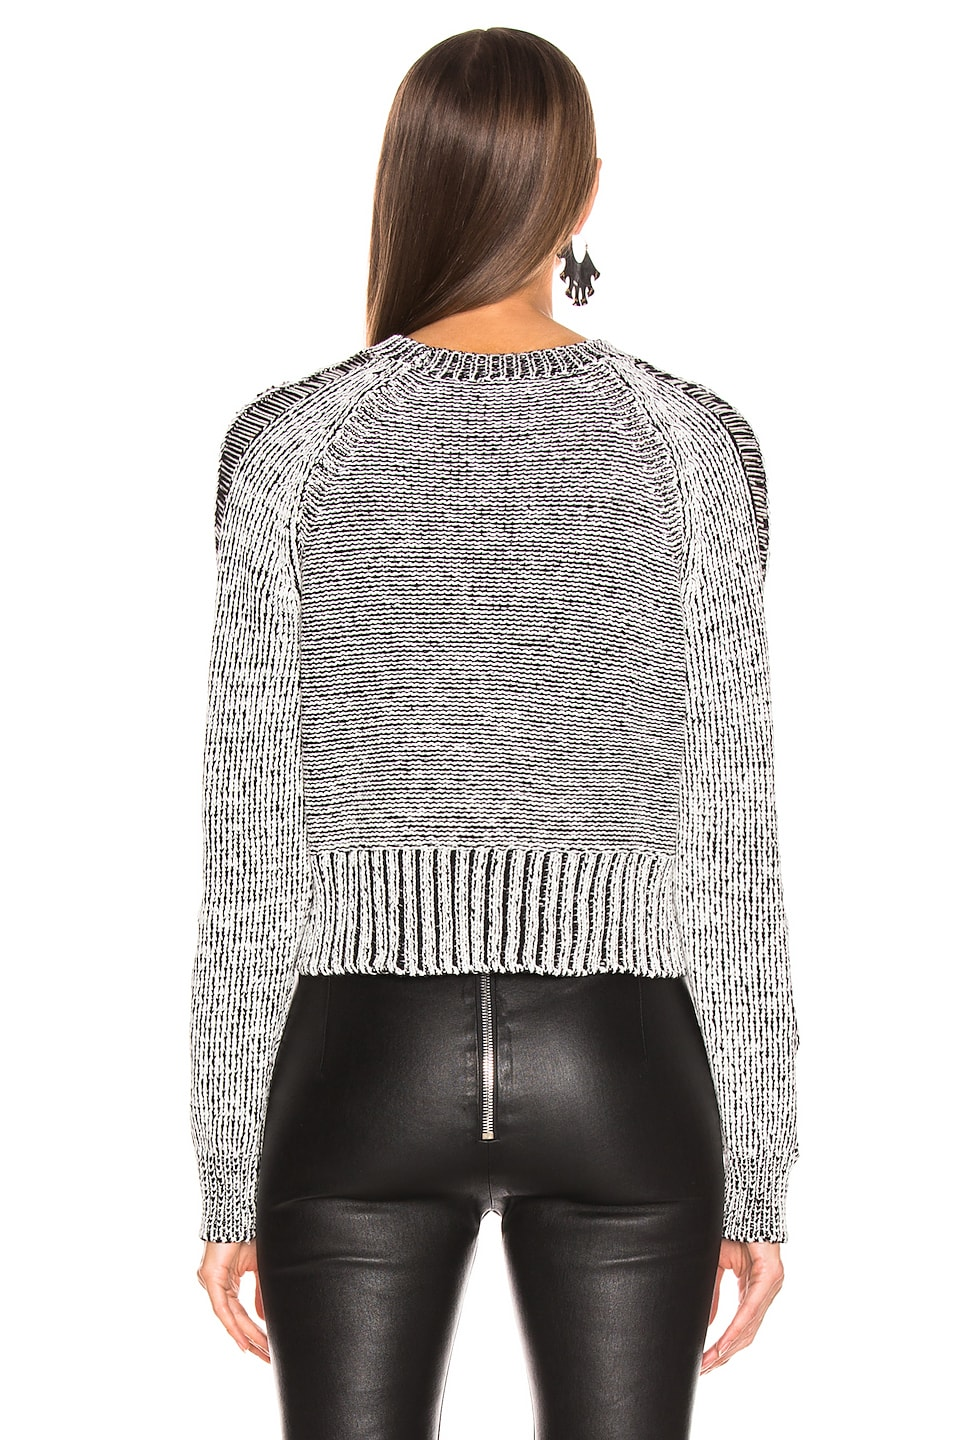 Image 3 of The Range Storm Knit in White & Black